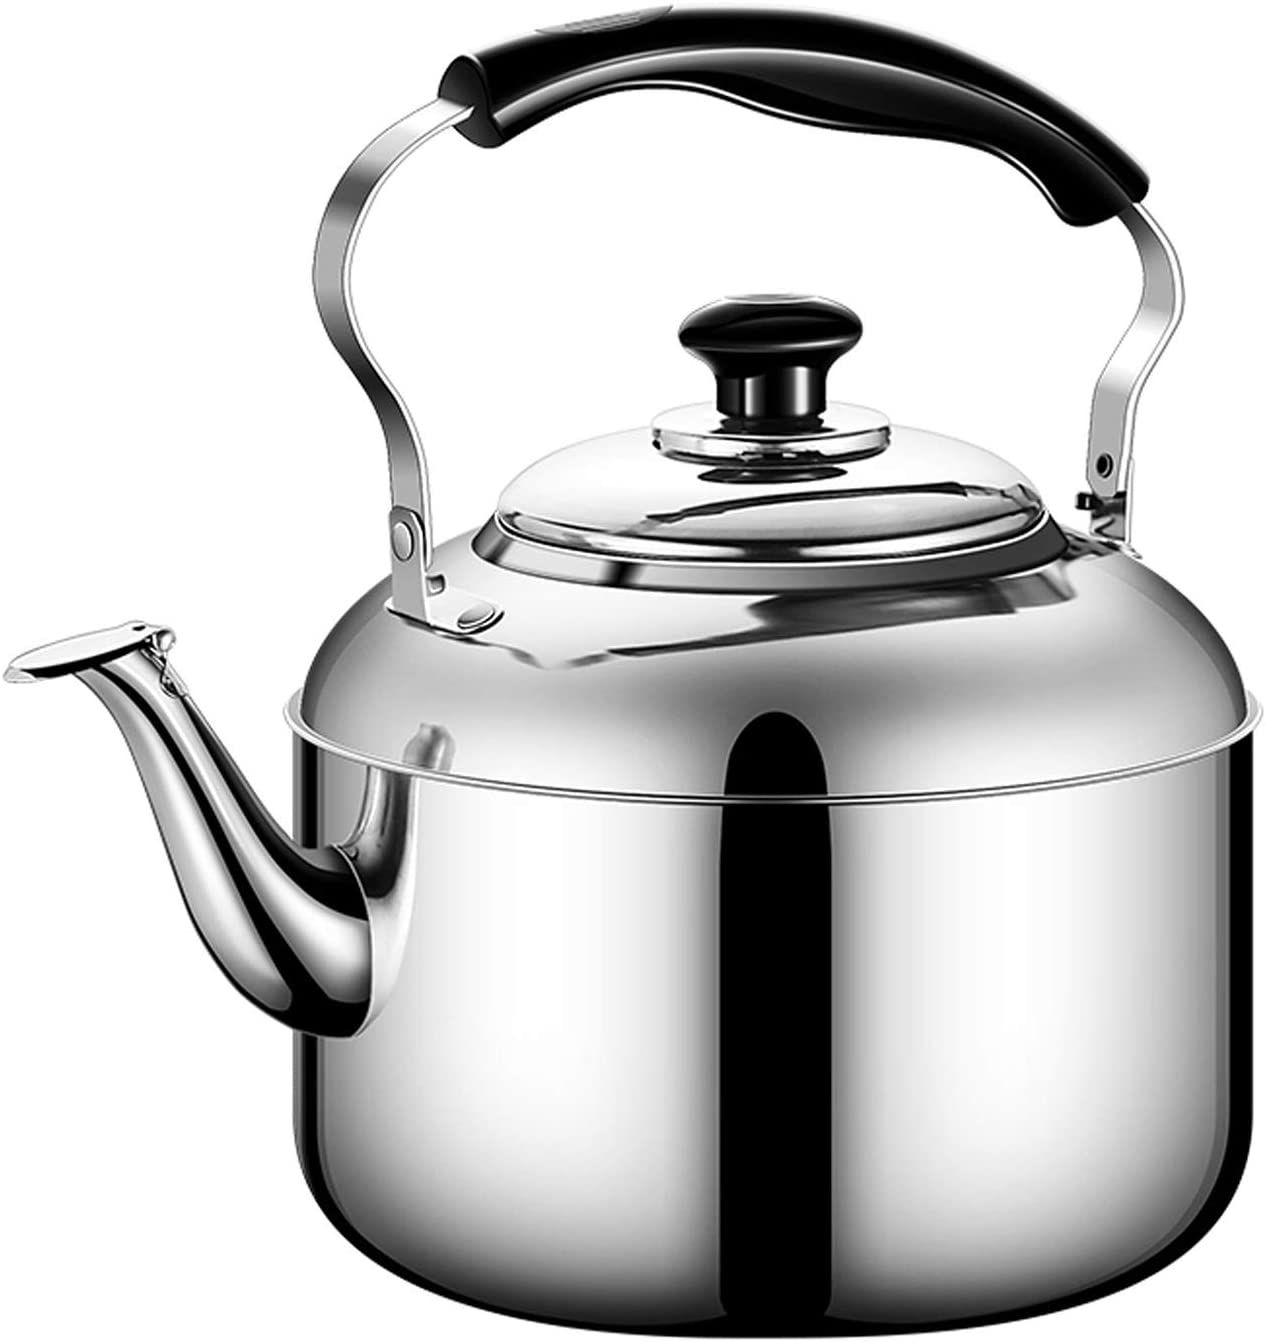 stainless steel Beauty Chicago Mall products tea kettle for stove top Whistle Tea Kettle-heat